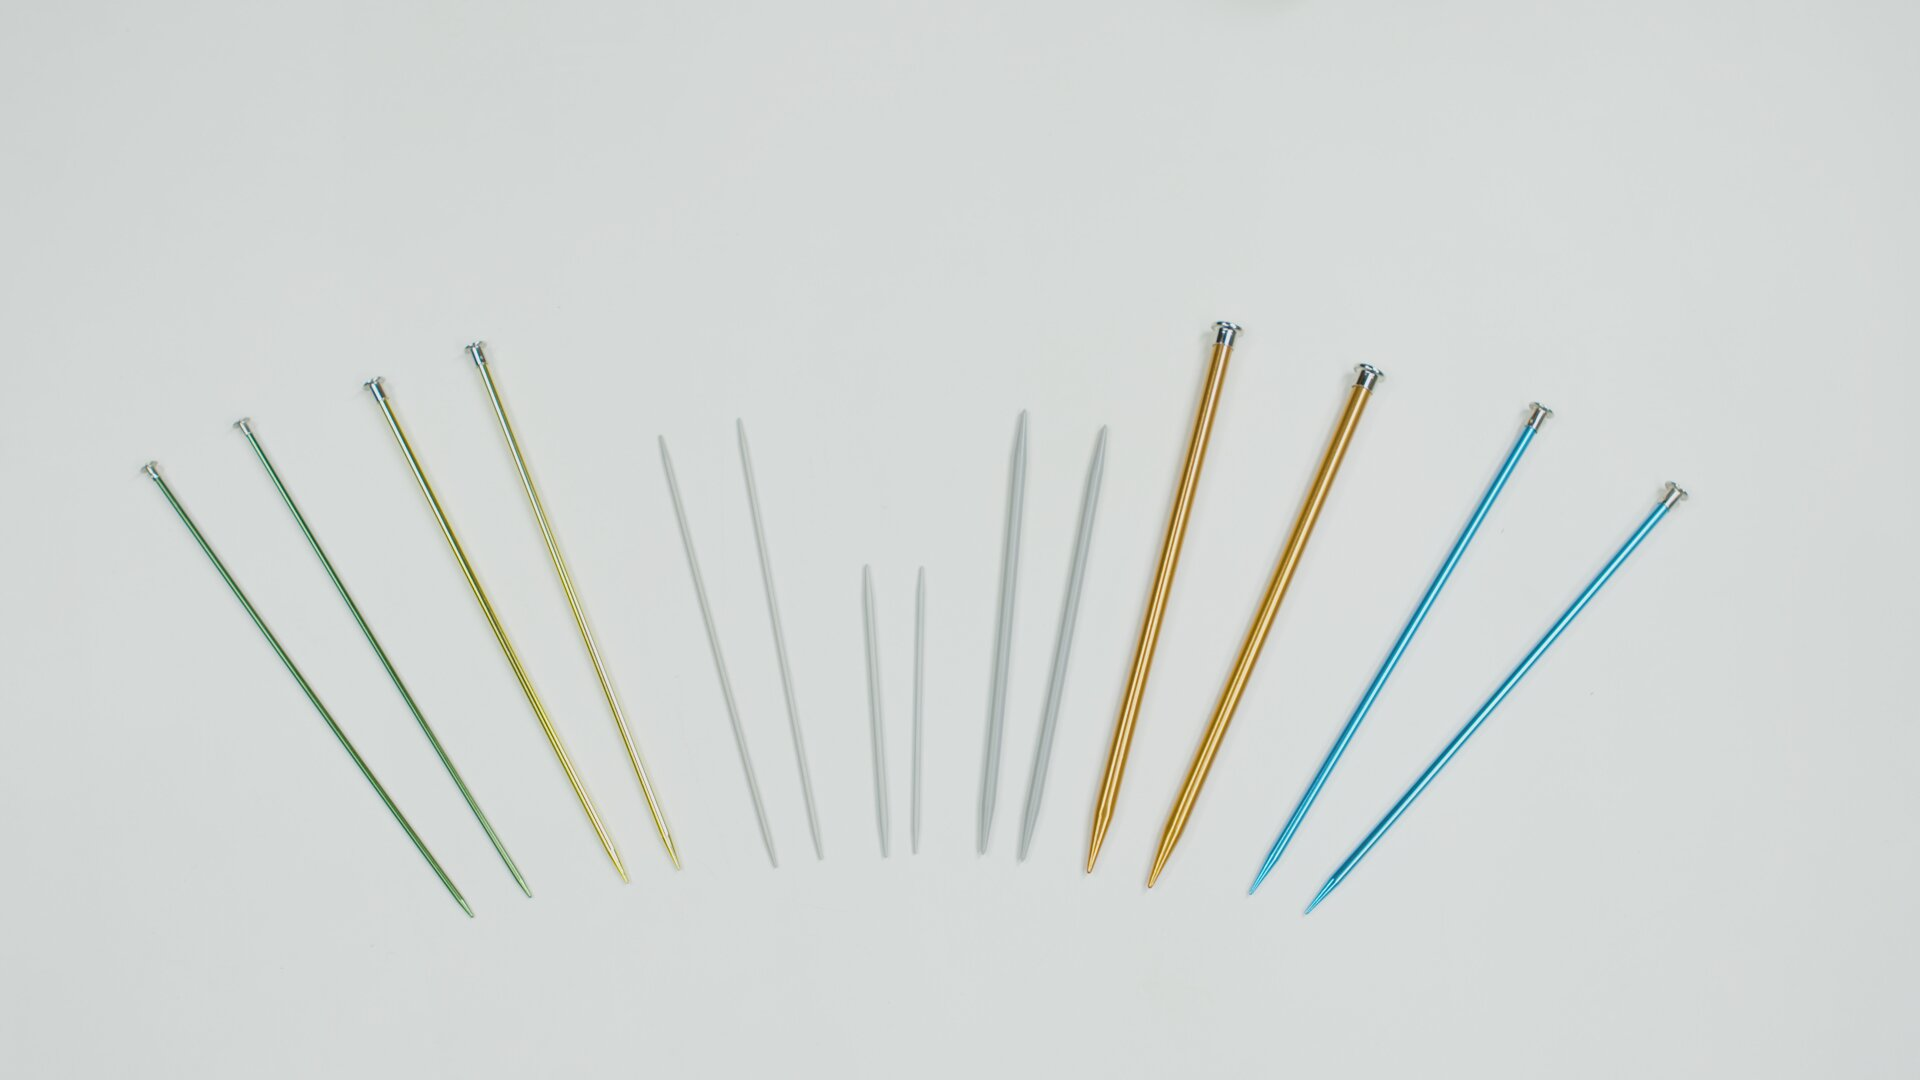 Different Knitting Needles For Your Projects